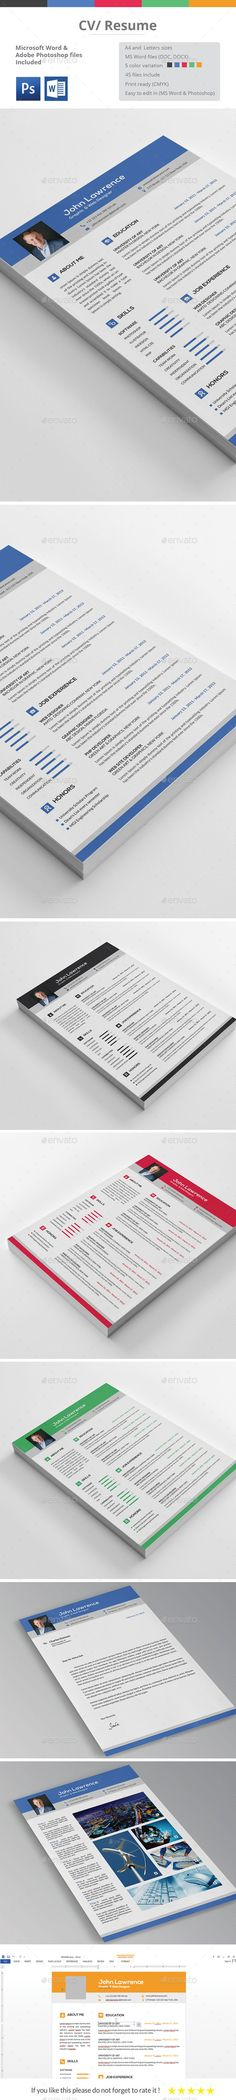 CV / Resume by Butterfly_Graphic CV / Resume TemplateVery easy to use and customise, extensive help file included. CV / Resume template including Resume, Cover Let College Resume Template, Simple Resume Template, Resume Design Template, Creative Resume Templates, Resume Words Skills, How To Make Resume, Colour Consultant, Good Resume Examples, Perfect Resume